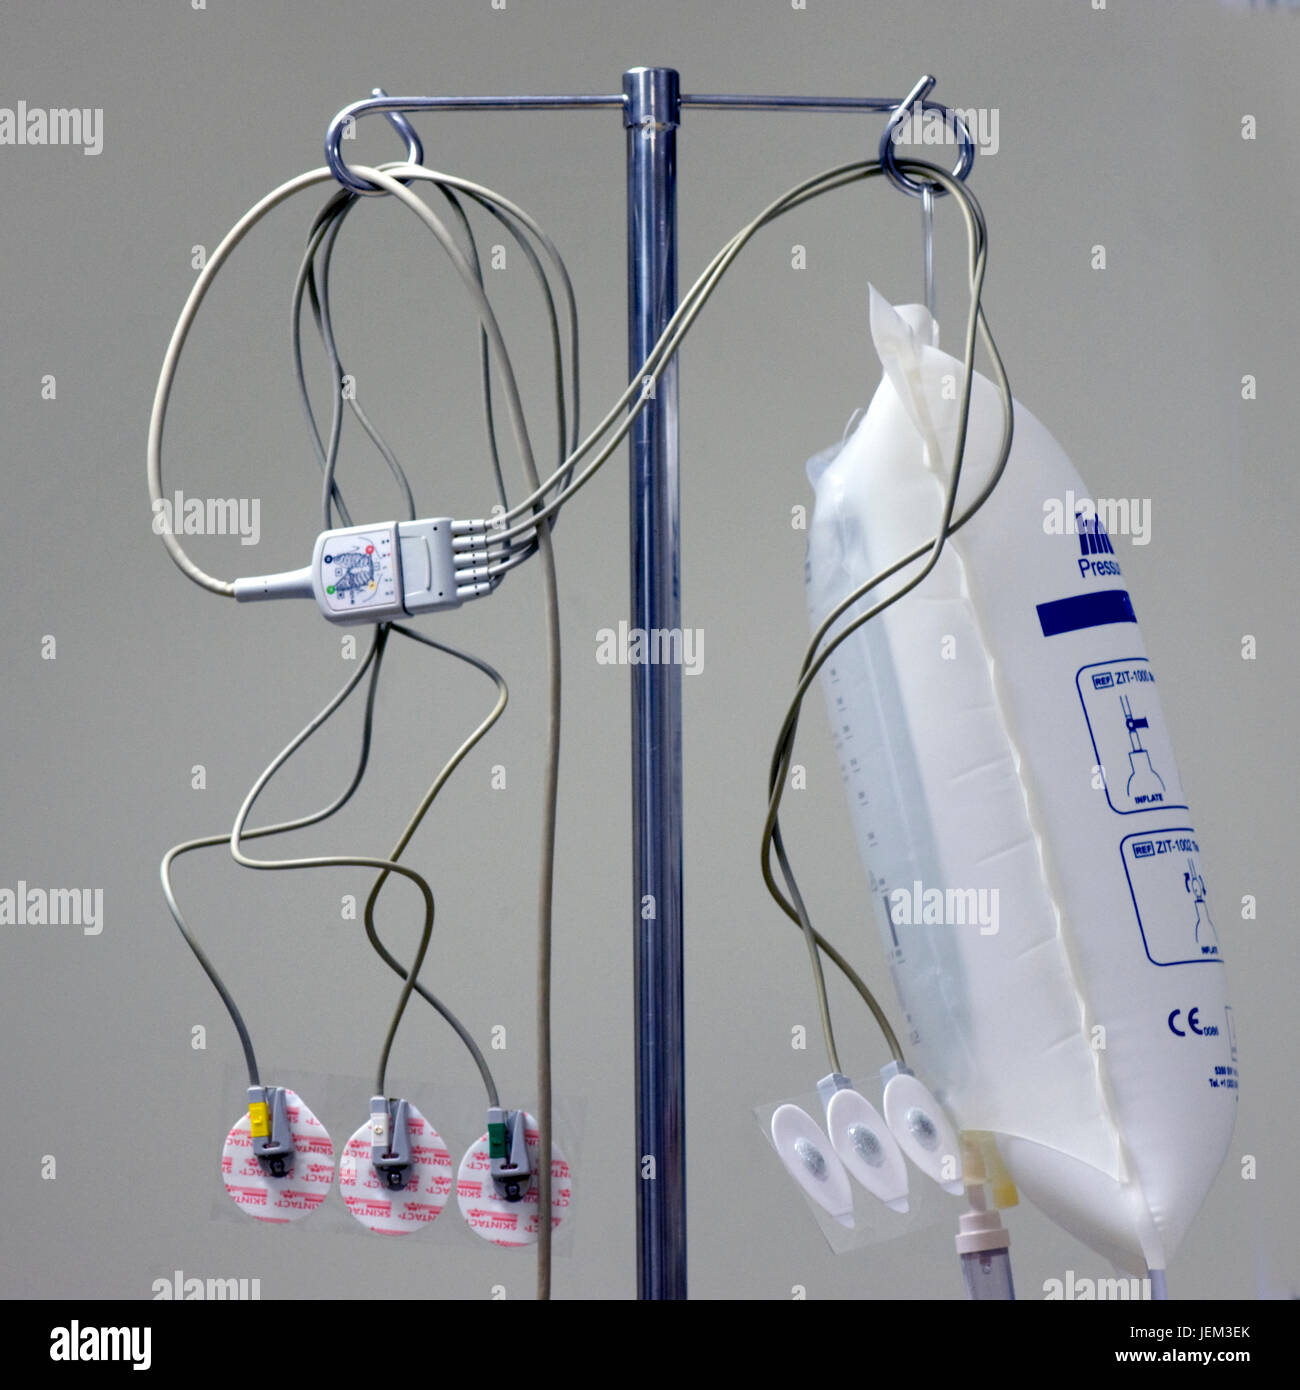 An IV pole or drip stand in an anaesthetics room in readiness for use anaethsetising a patient for a surgical operation. - Stock Image